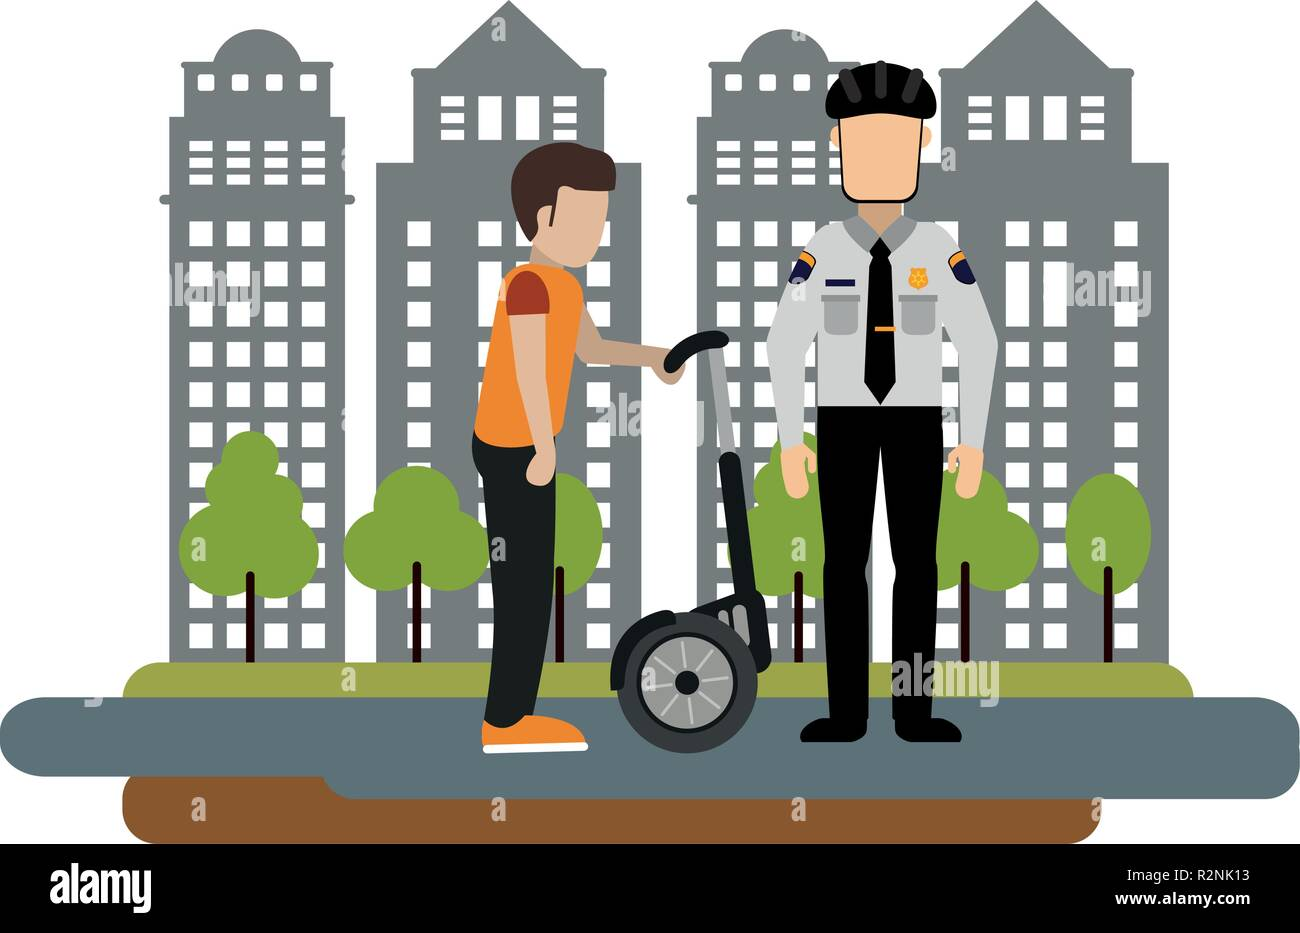 Police fines a man with hover board at city vector illustration graphic design - Stock Vector